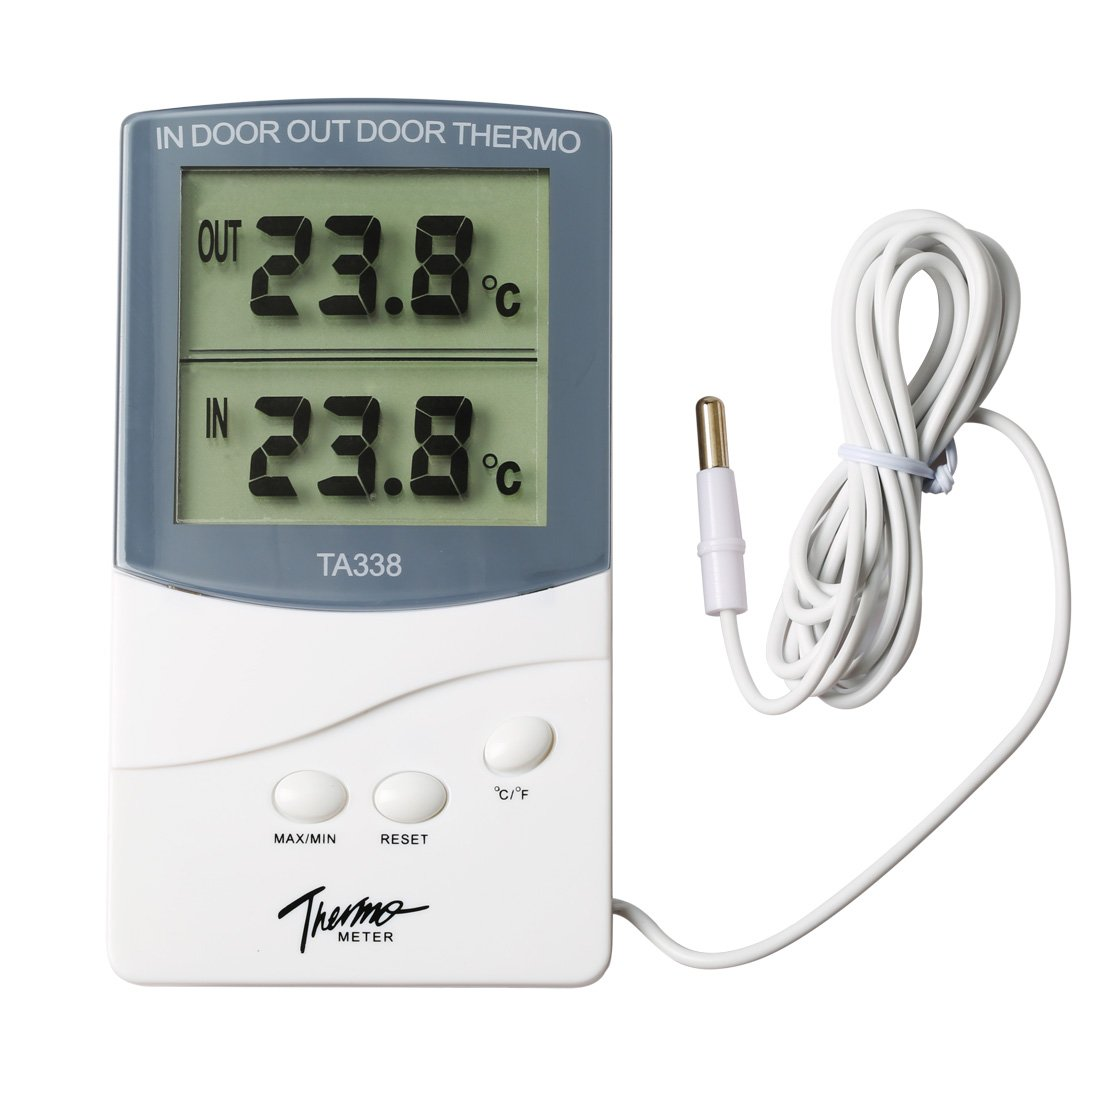 Ray-JrMALL Digital Thermometer Indoor Outdoor Weather Station MAX/MIN T, New Temperature Gauge LCD Digital Temperature Meter White MR.JIANG RayMALL0741